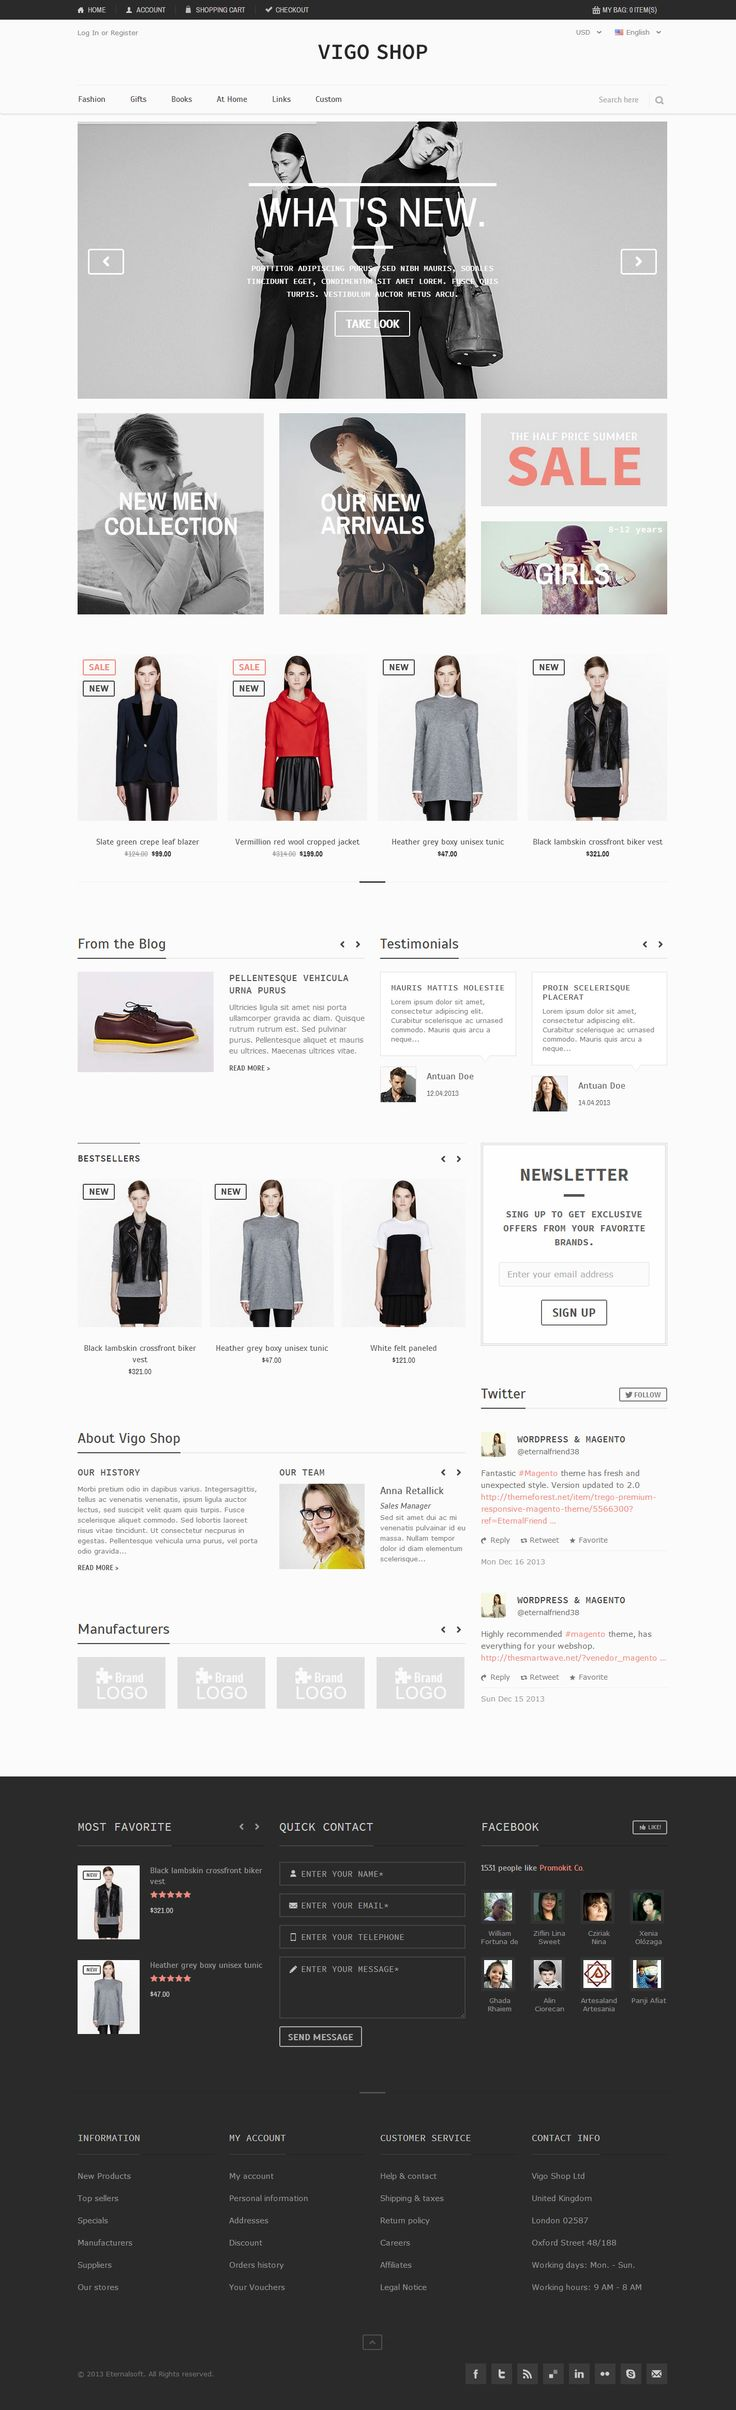 best images about 메인 on pinterest ecommerce websites